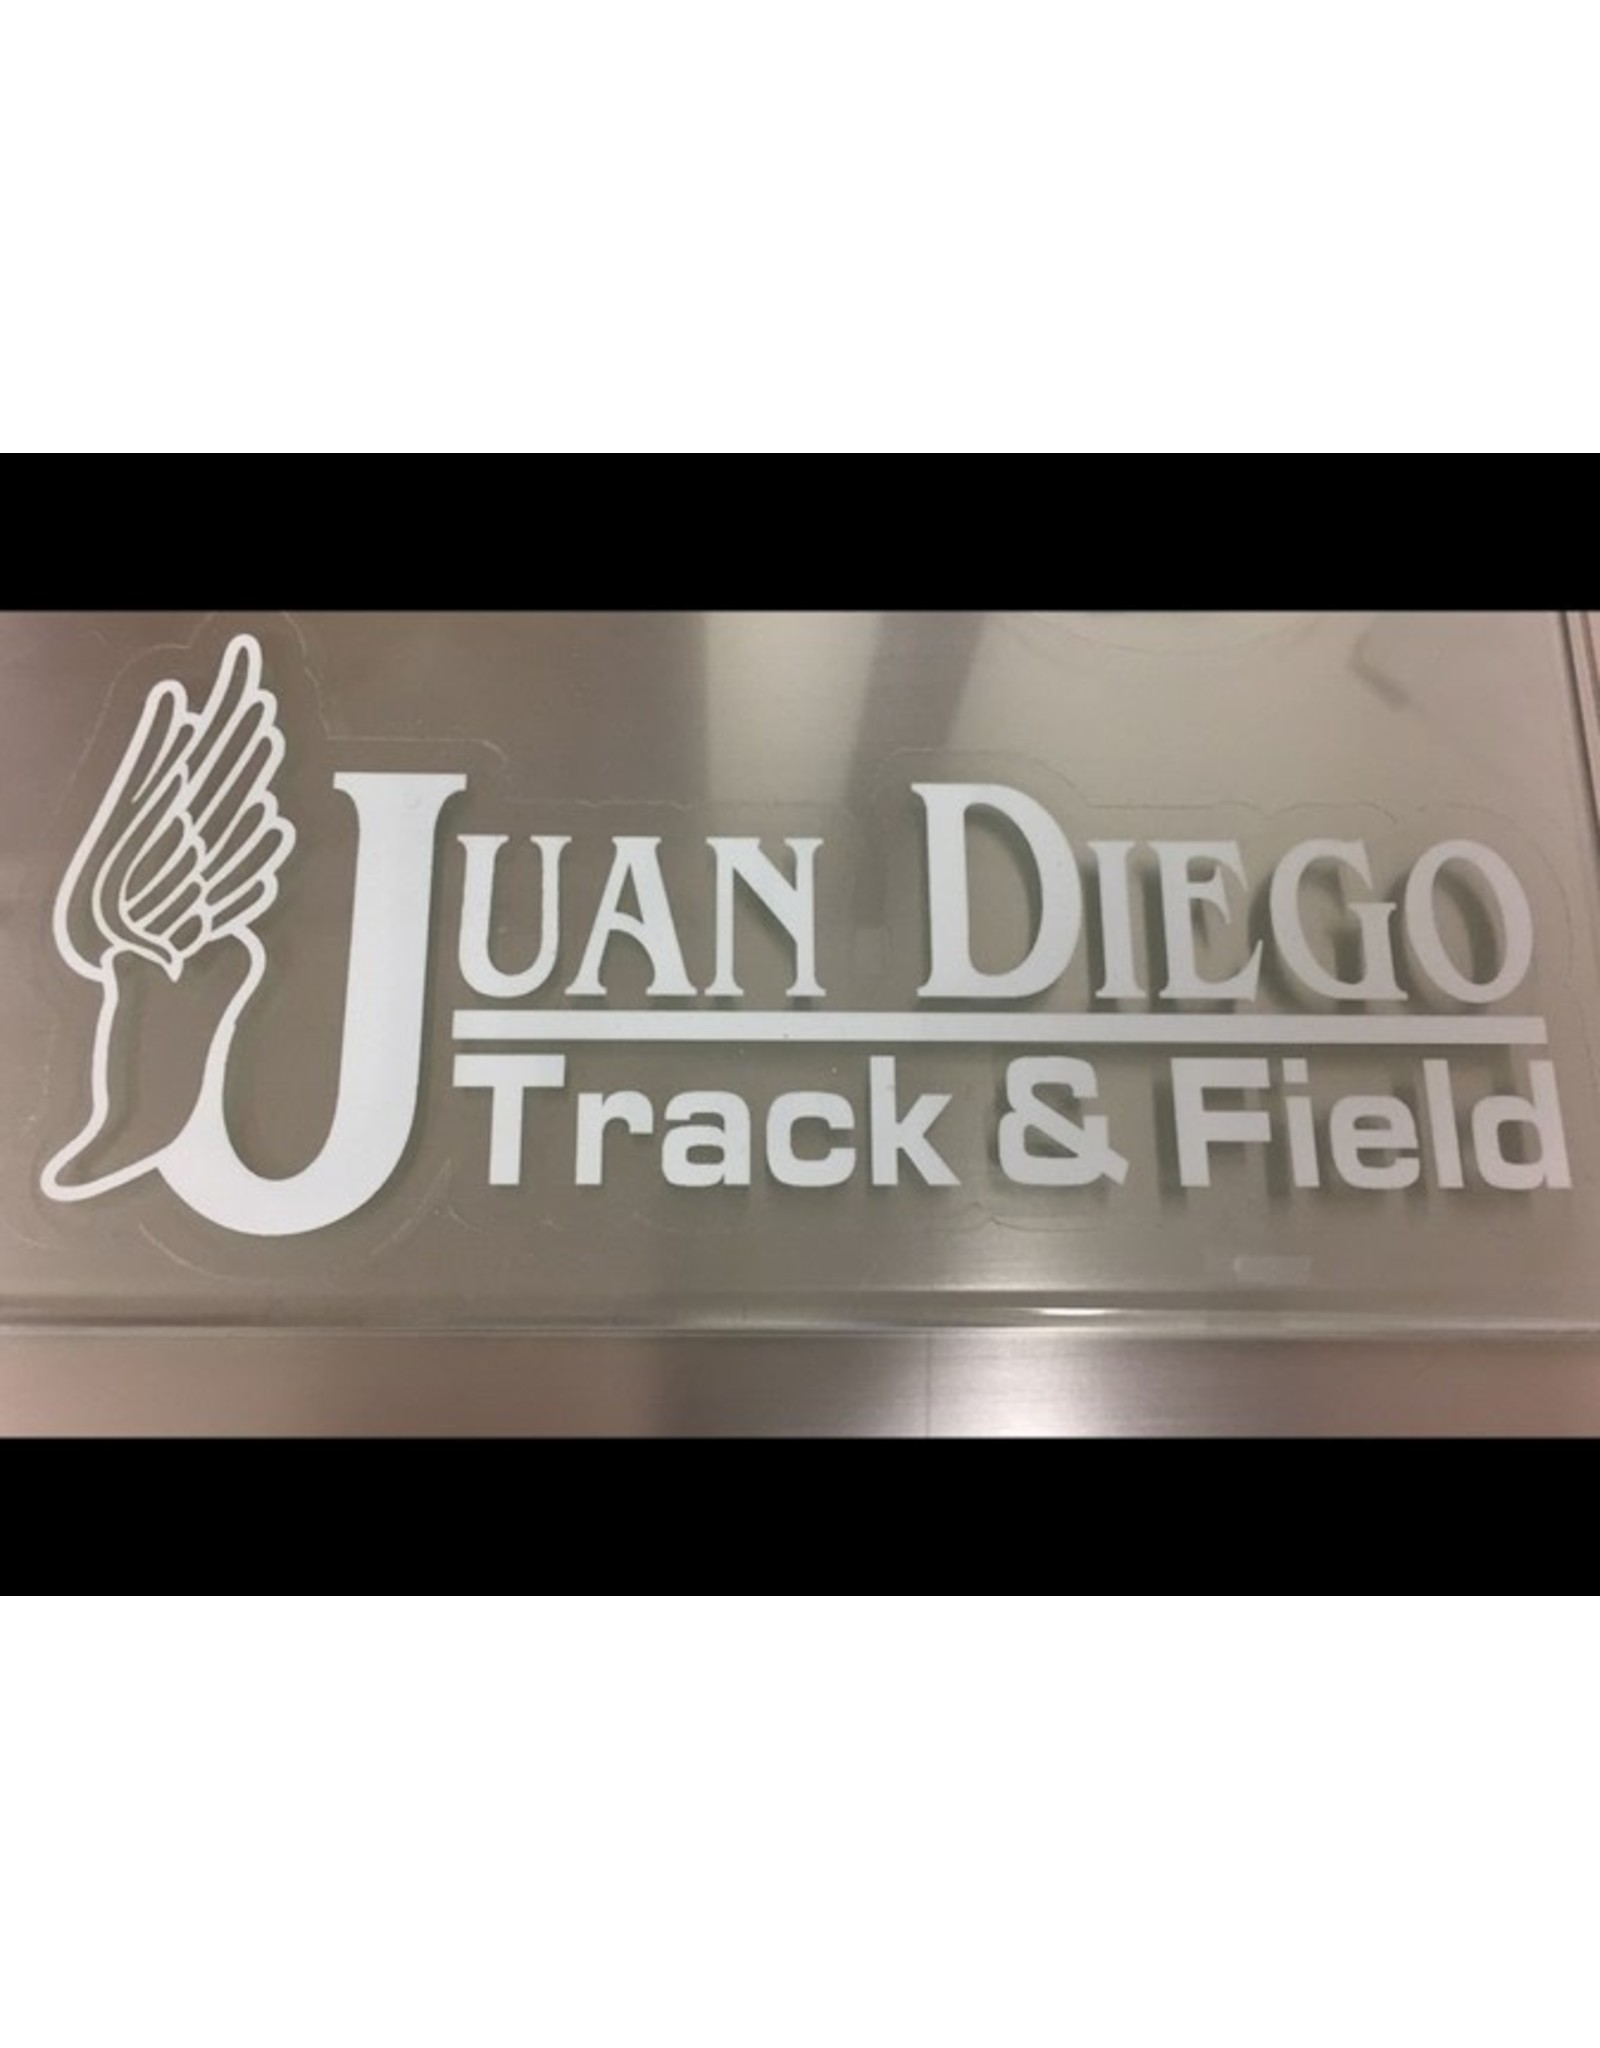 NON-UNIFORM Track & Field - Decal, clearance, sold as is